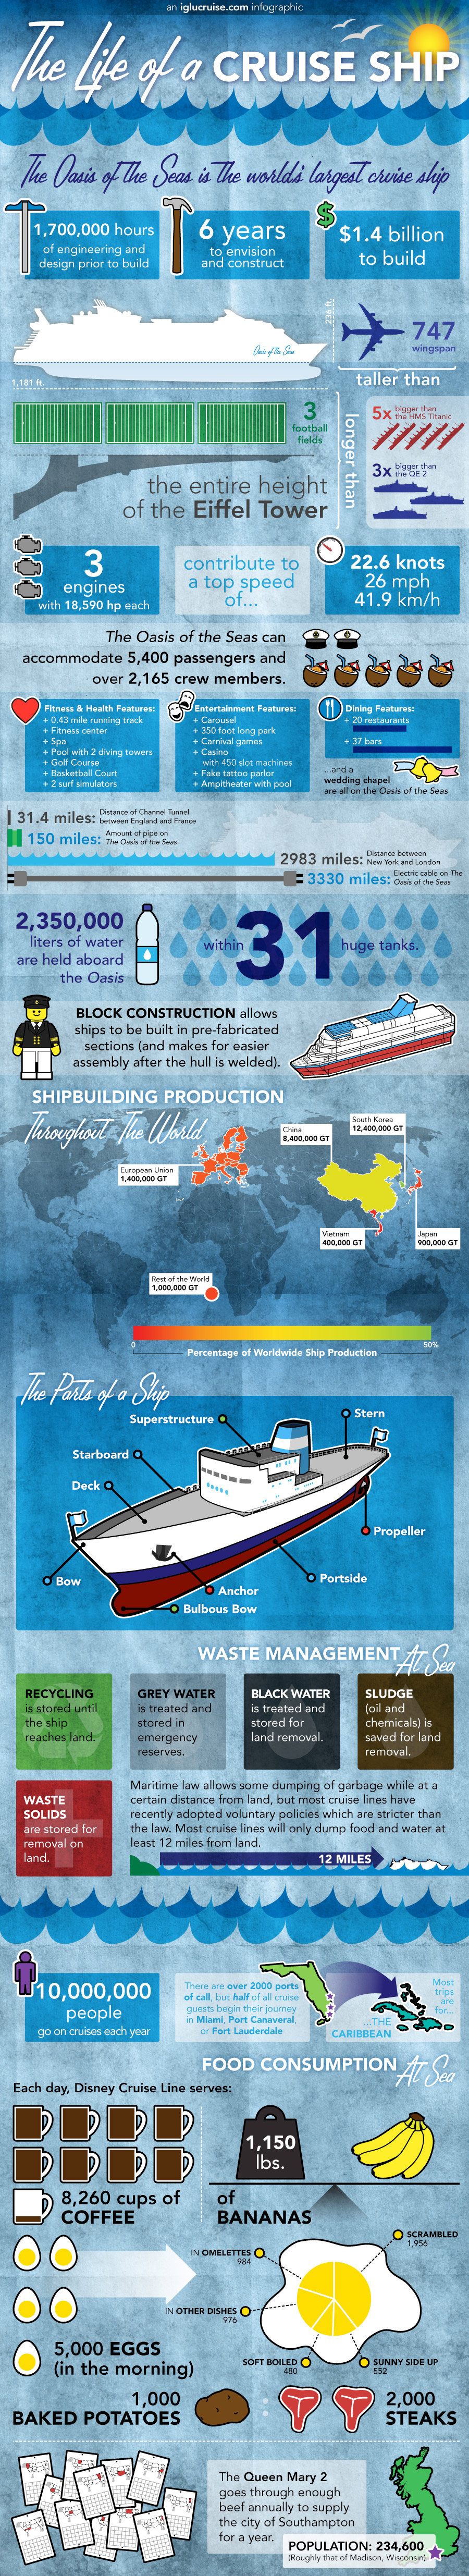 How Big Are Cruise Ships Infographic